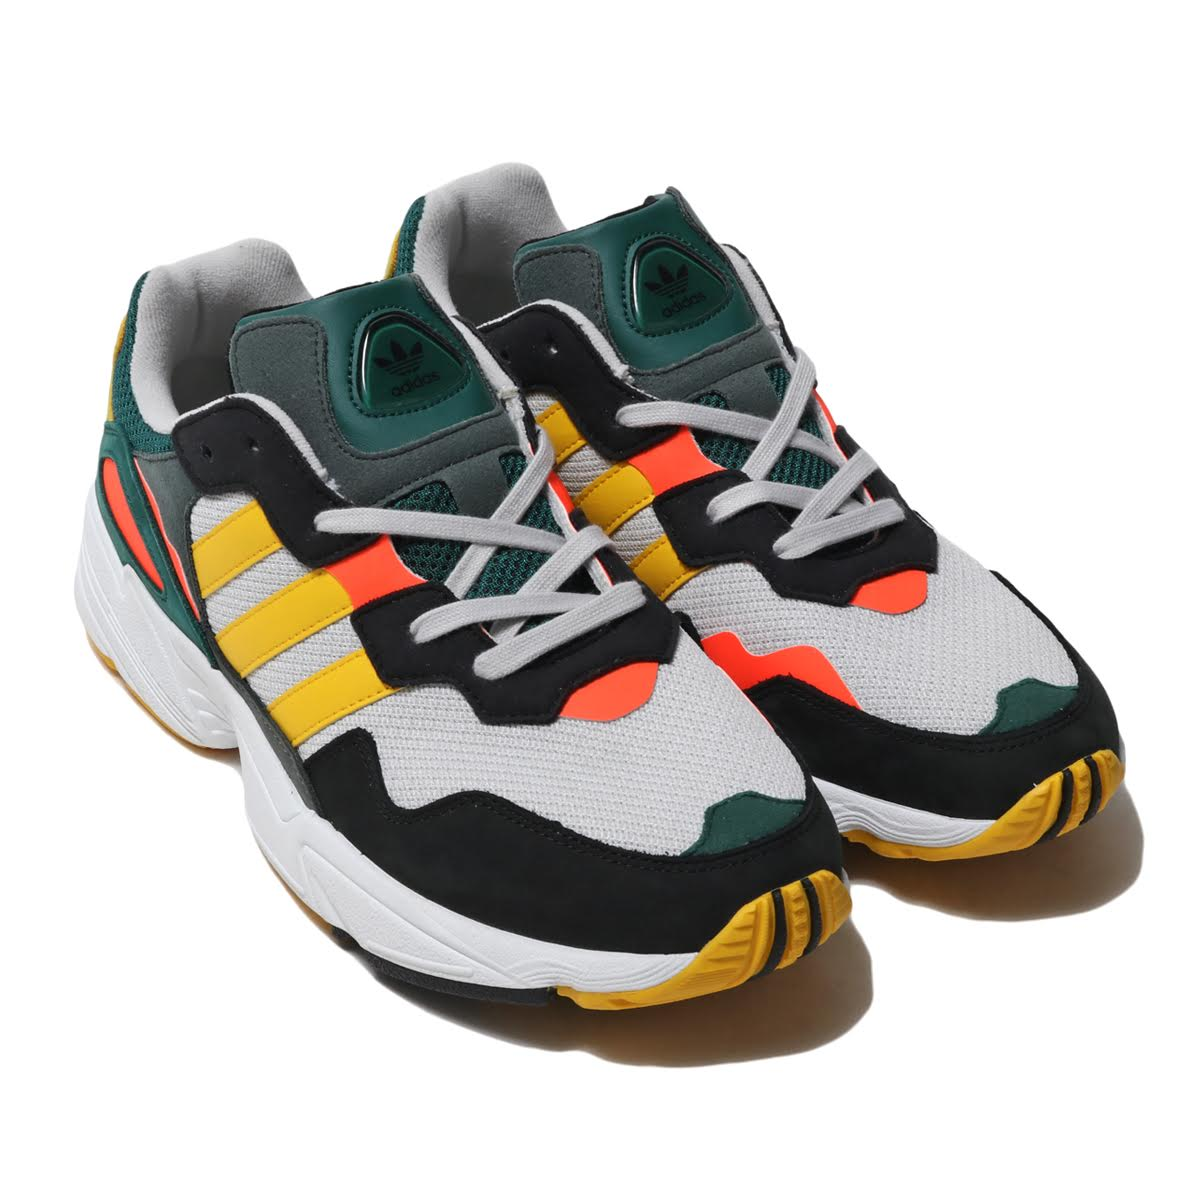 separation shoes dfdee e9cac adidas Originals YUNG-96 (GREY ONEBOLD GOLDSOLAR RED) (Adidas originals  young people -96)